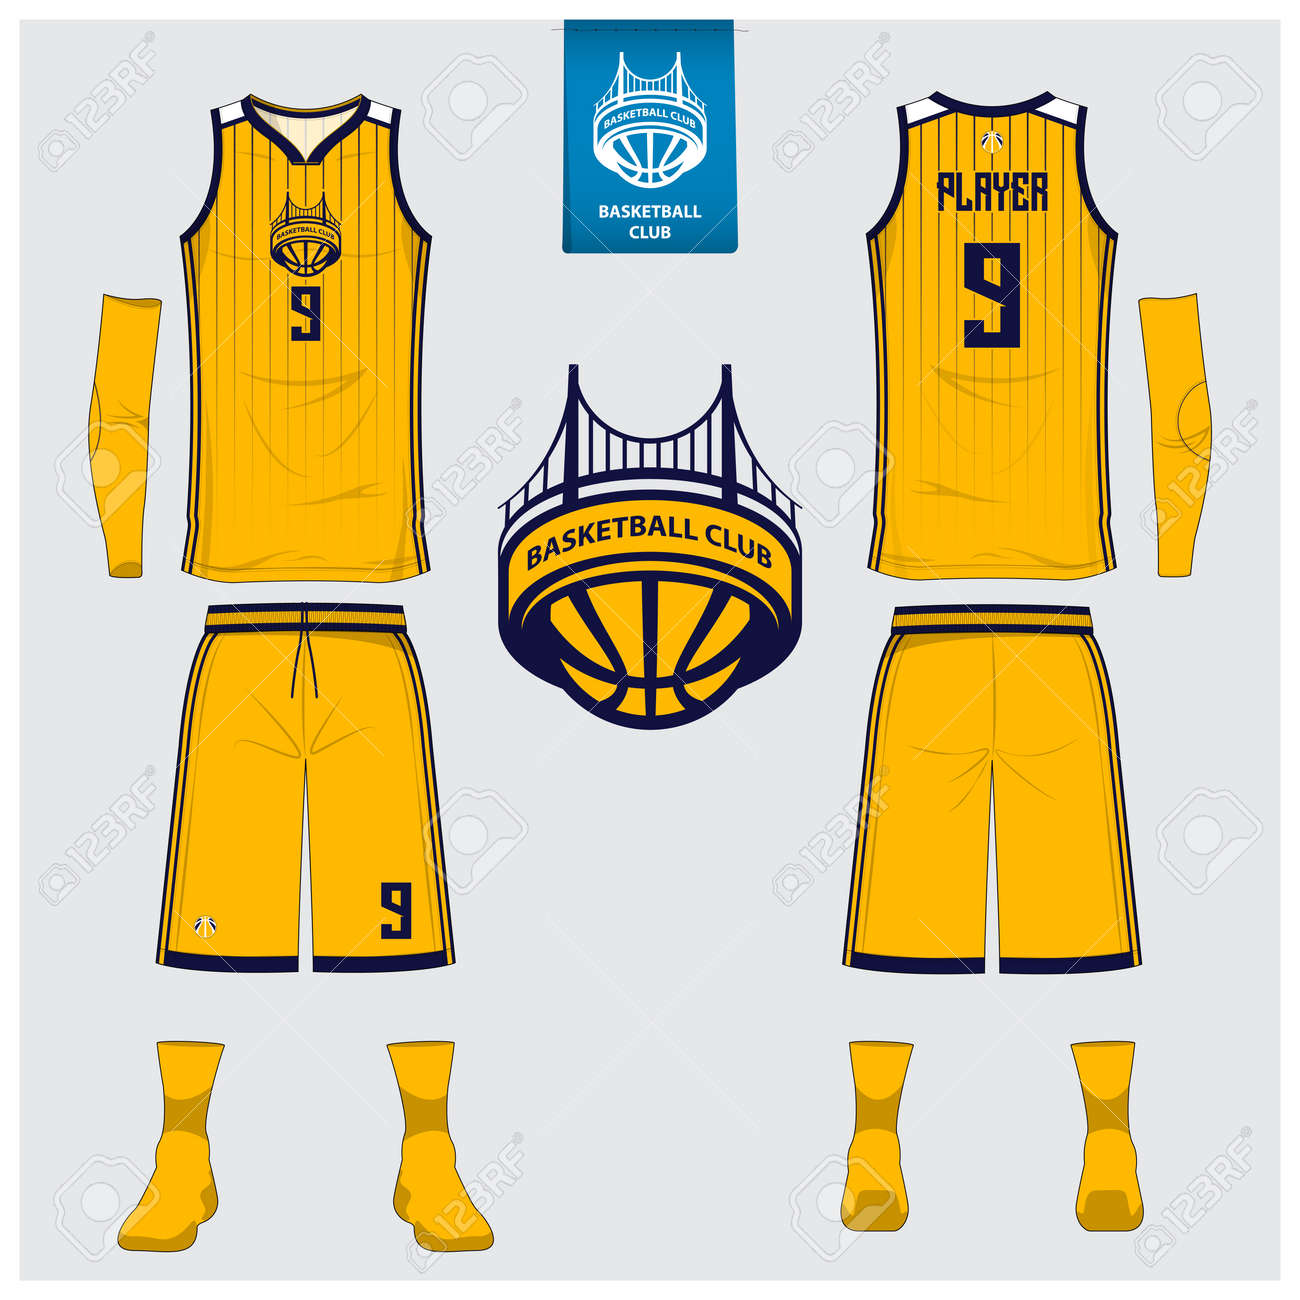 43b248d231f Vector Illustration. Basketball uniform or sport jersey, shorts, socks  template for basketball club. Front and